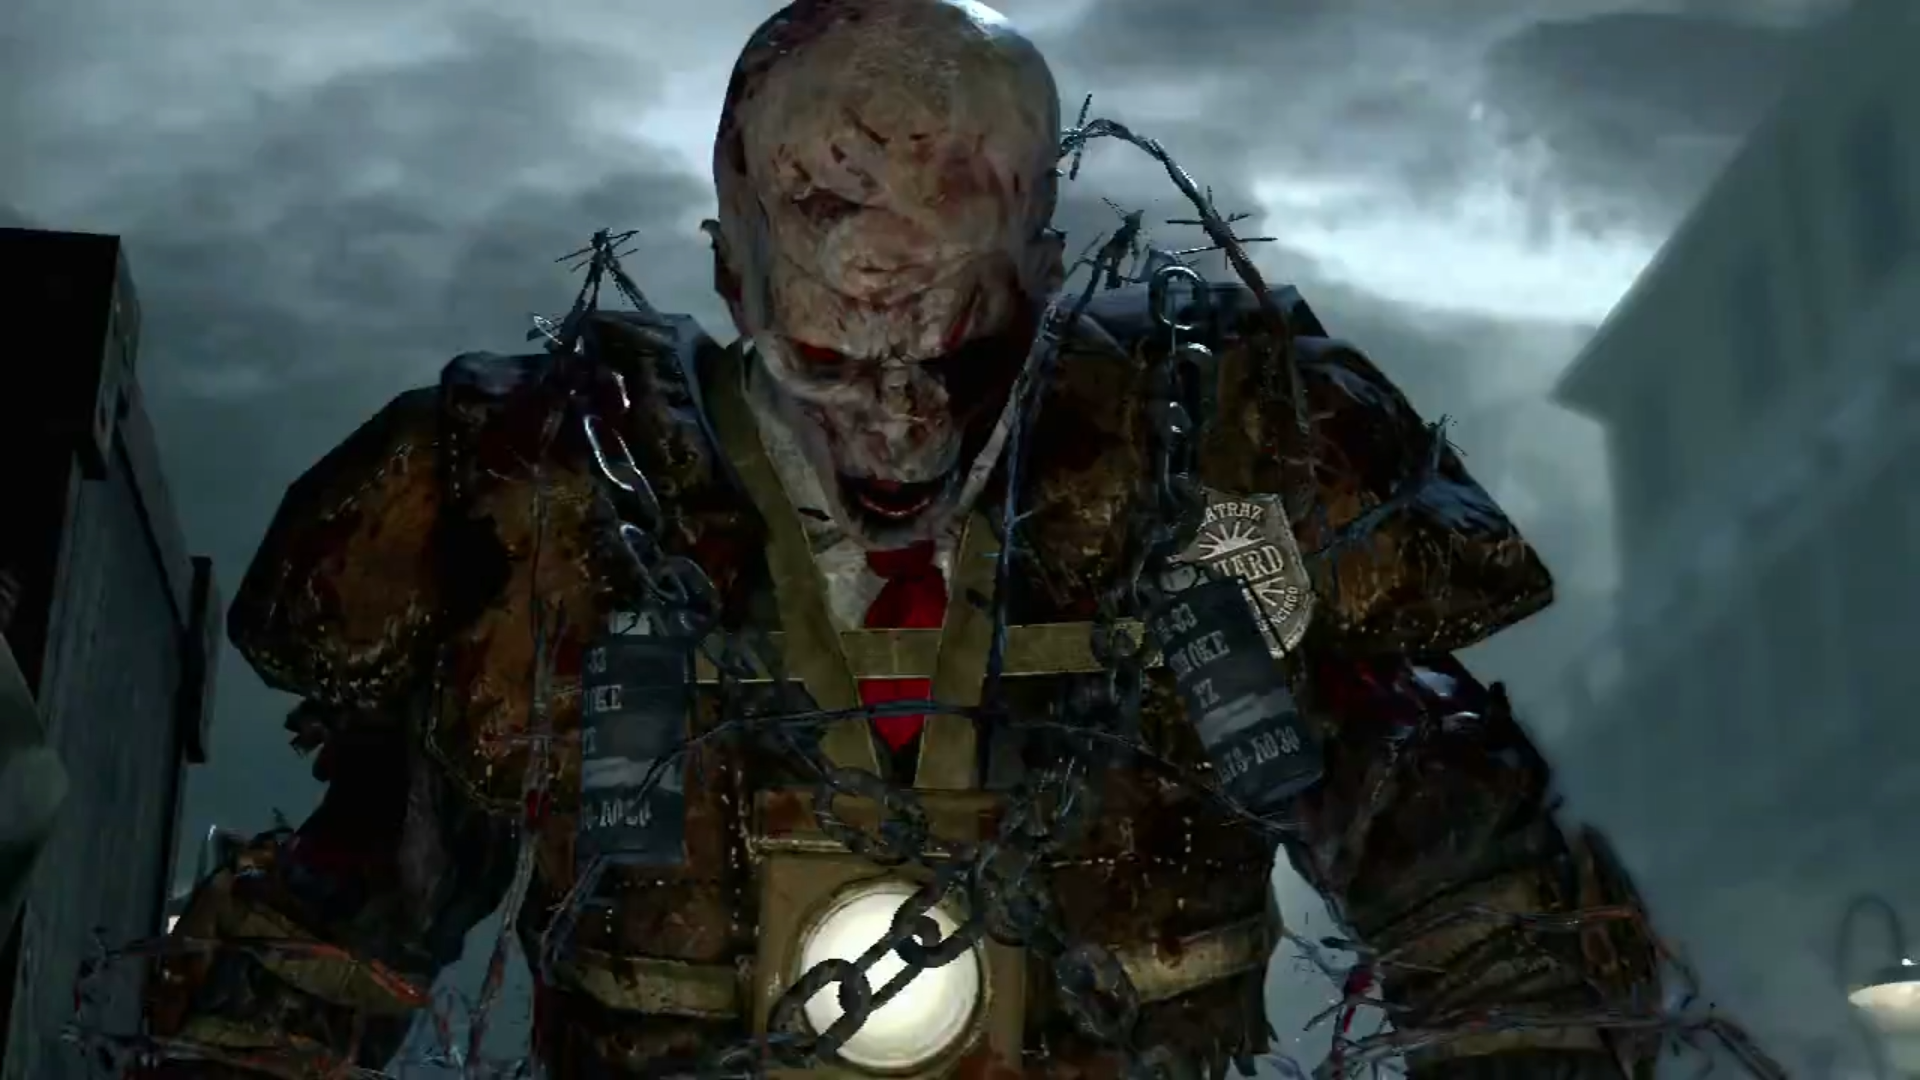 Image brutus dying mob of the dead the call - Mob of the dead pictures ...